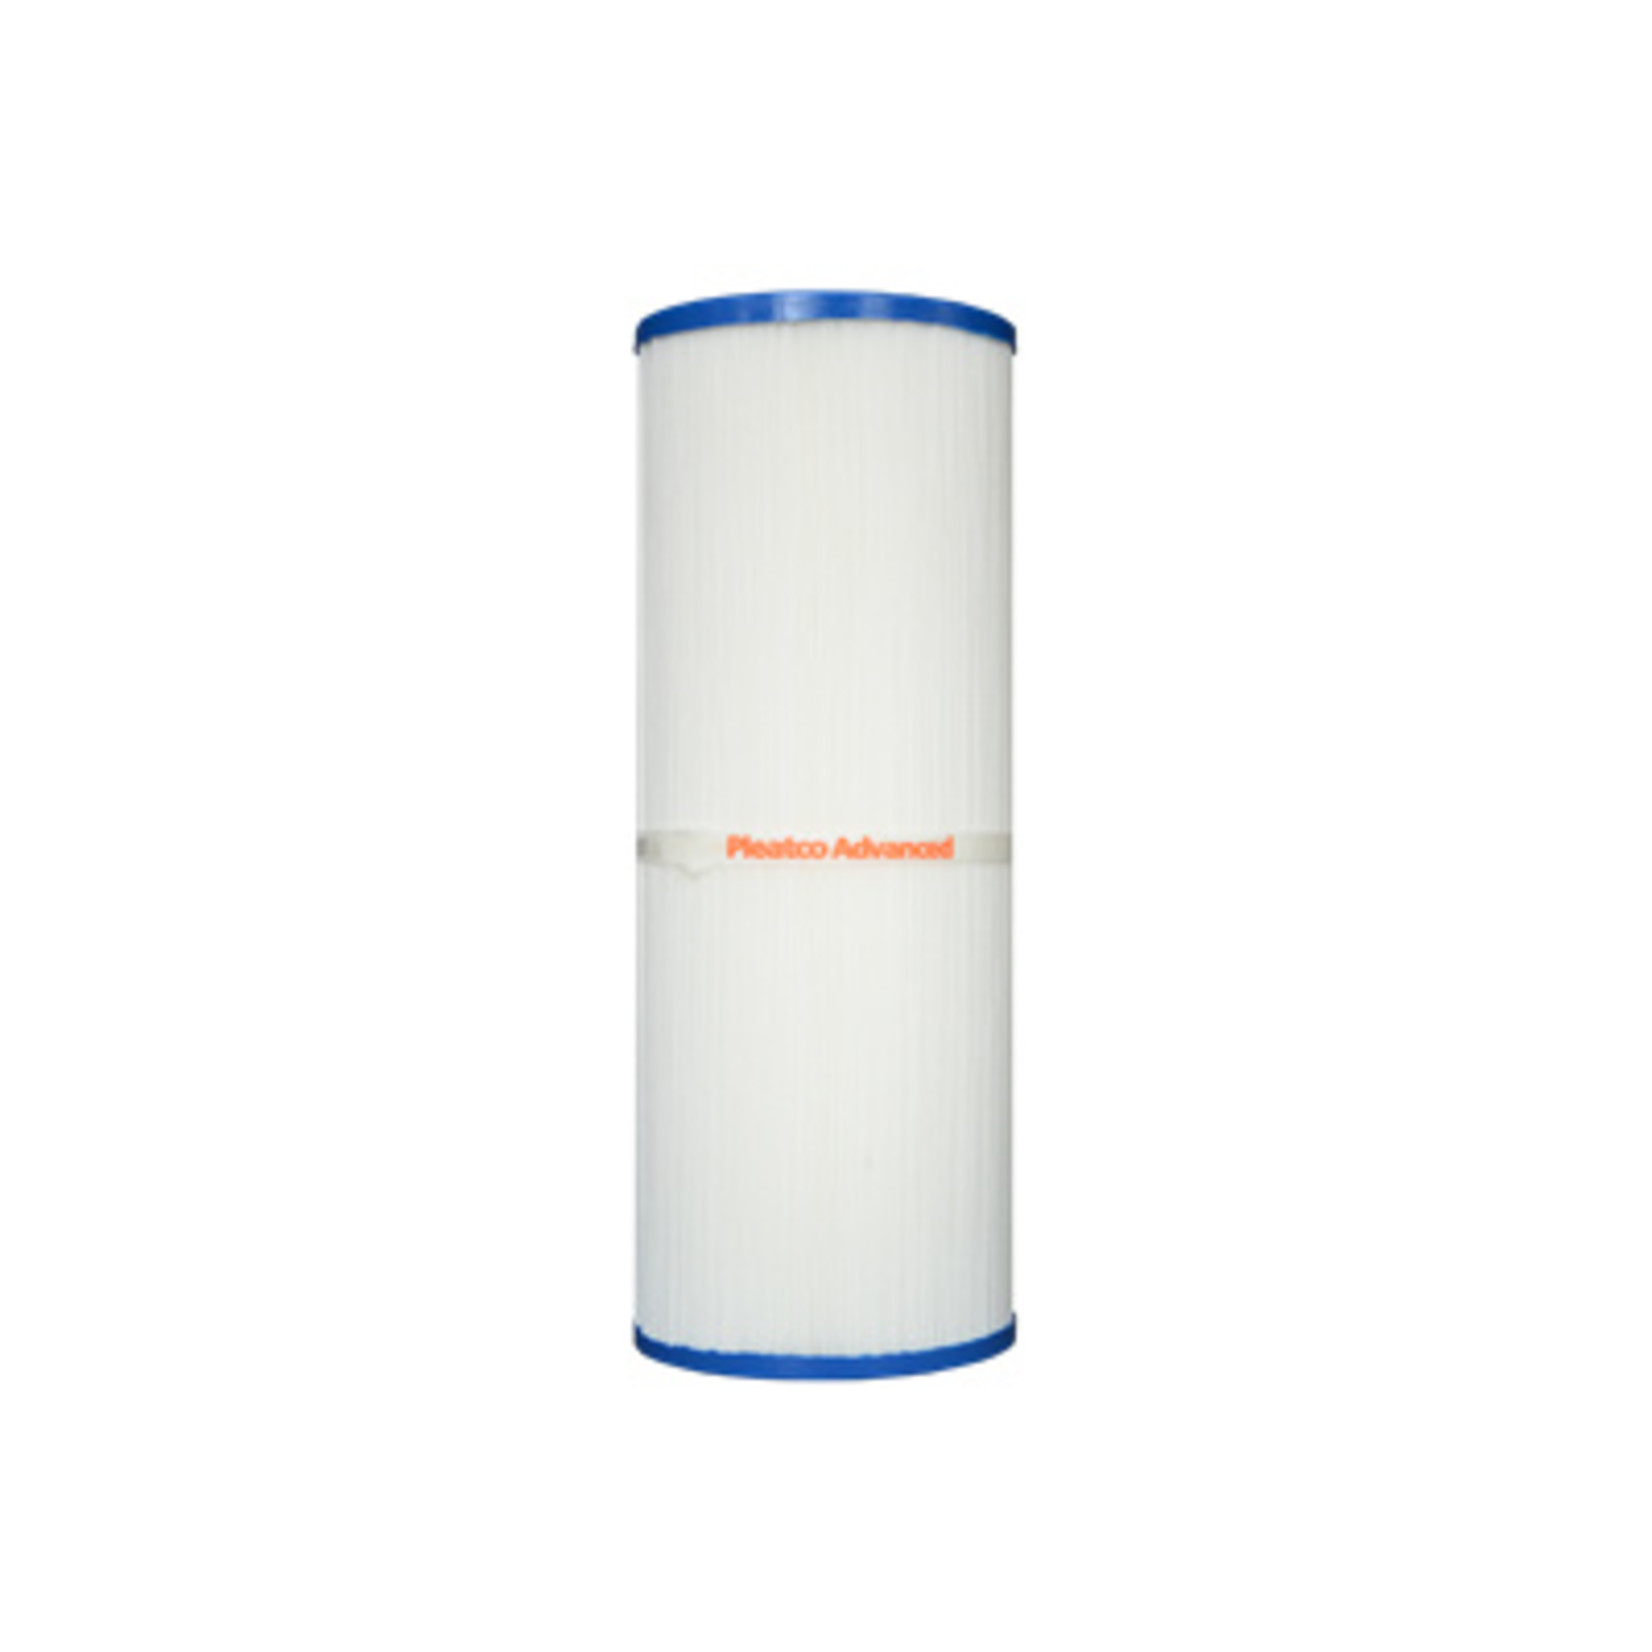 Filter Cartridge HP Serenity 50 sqft